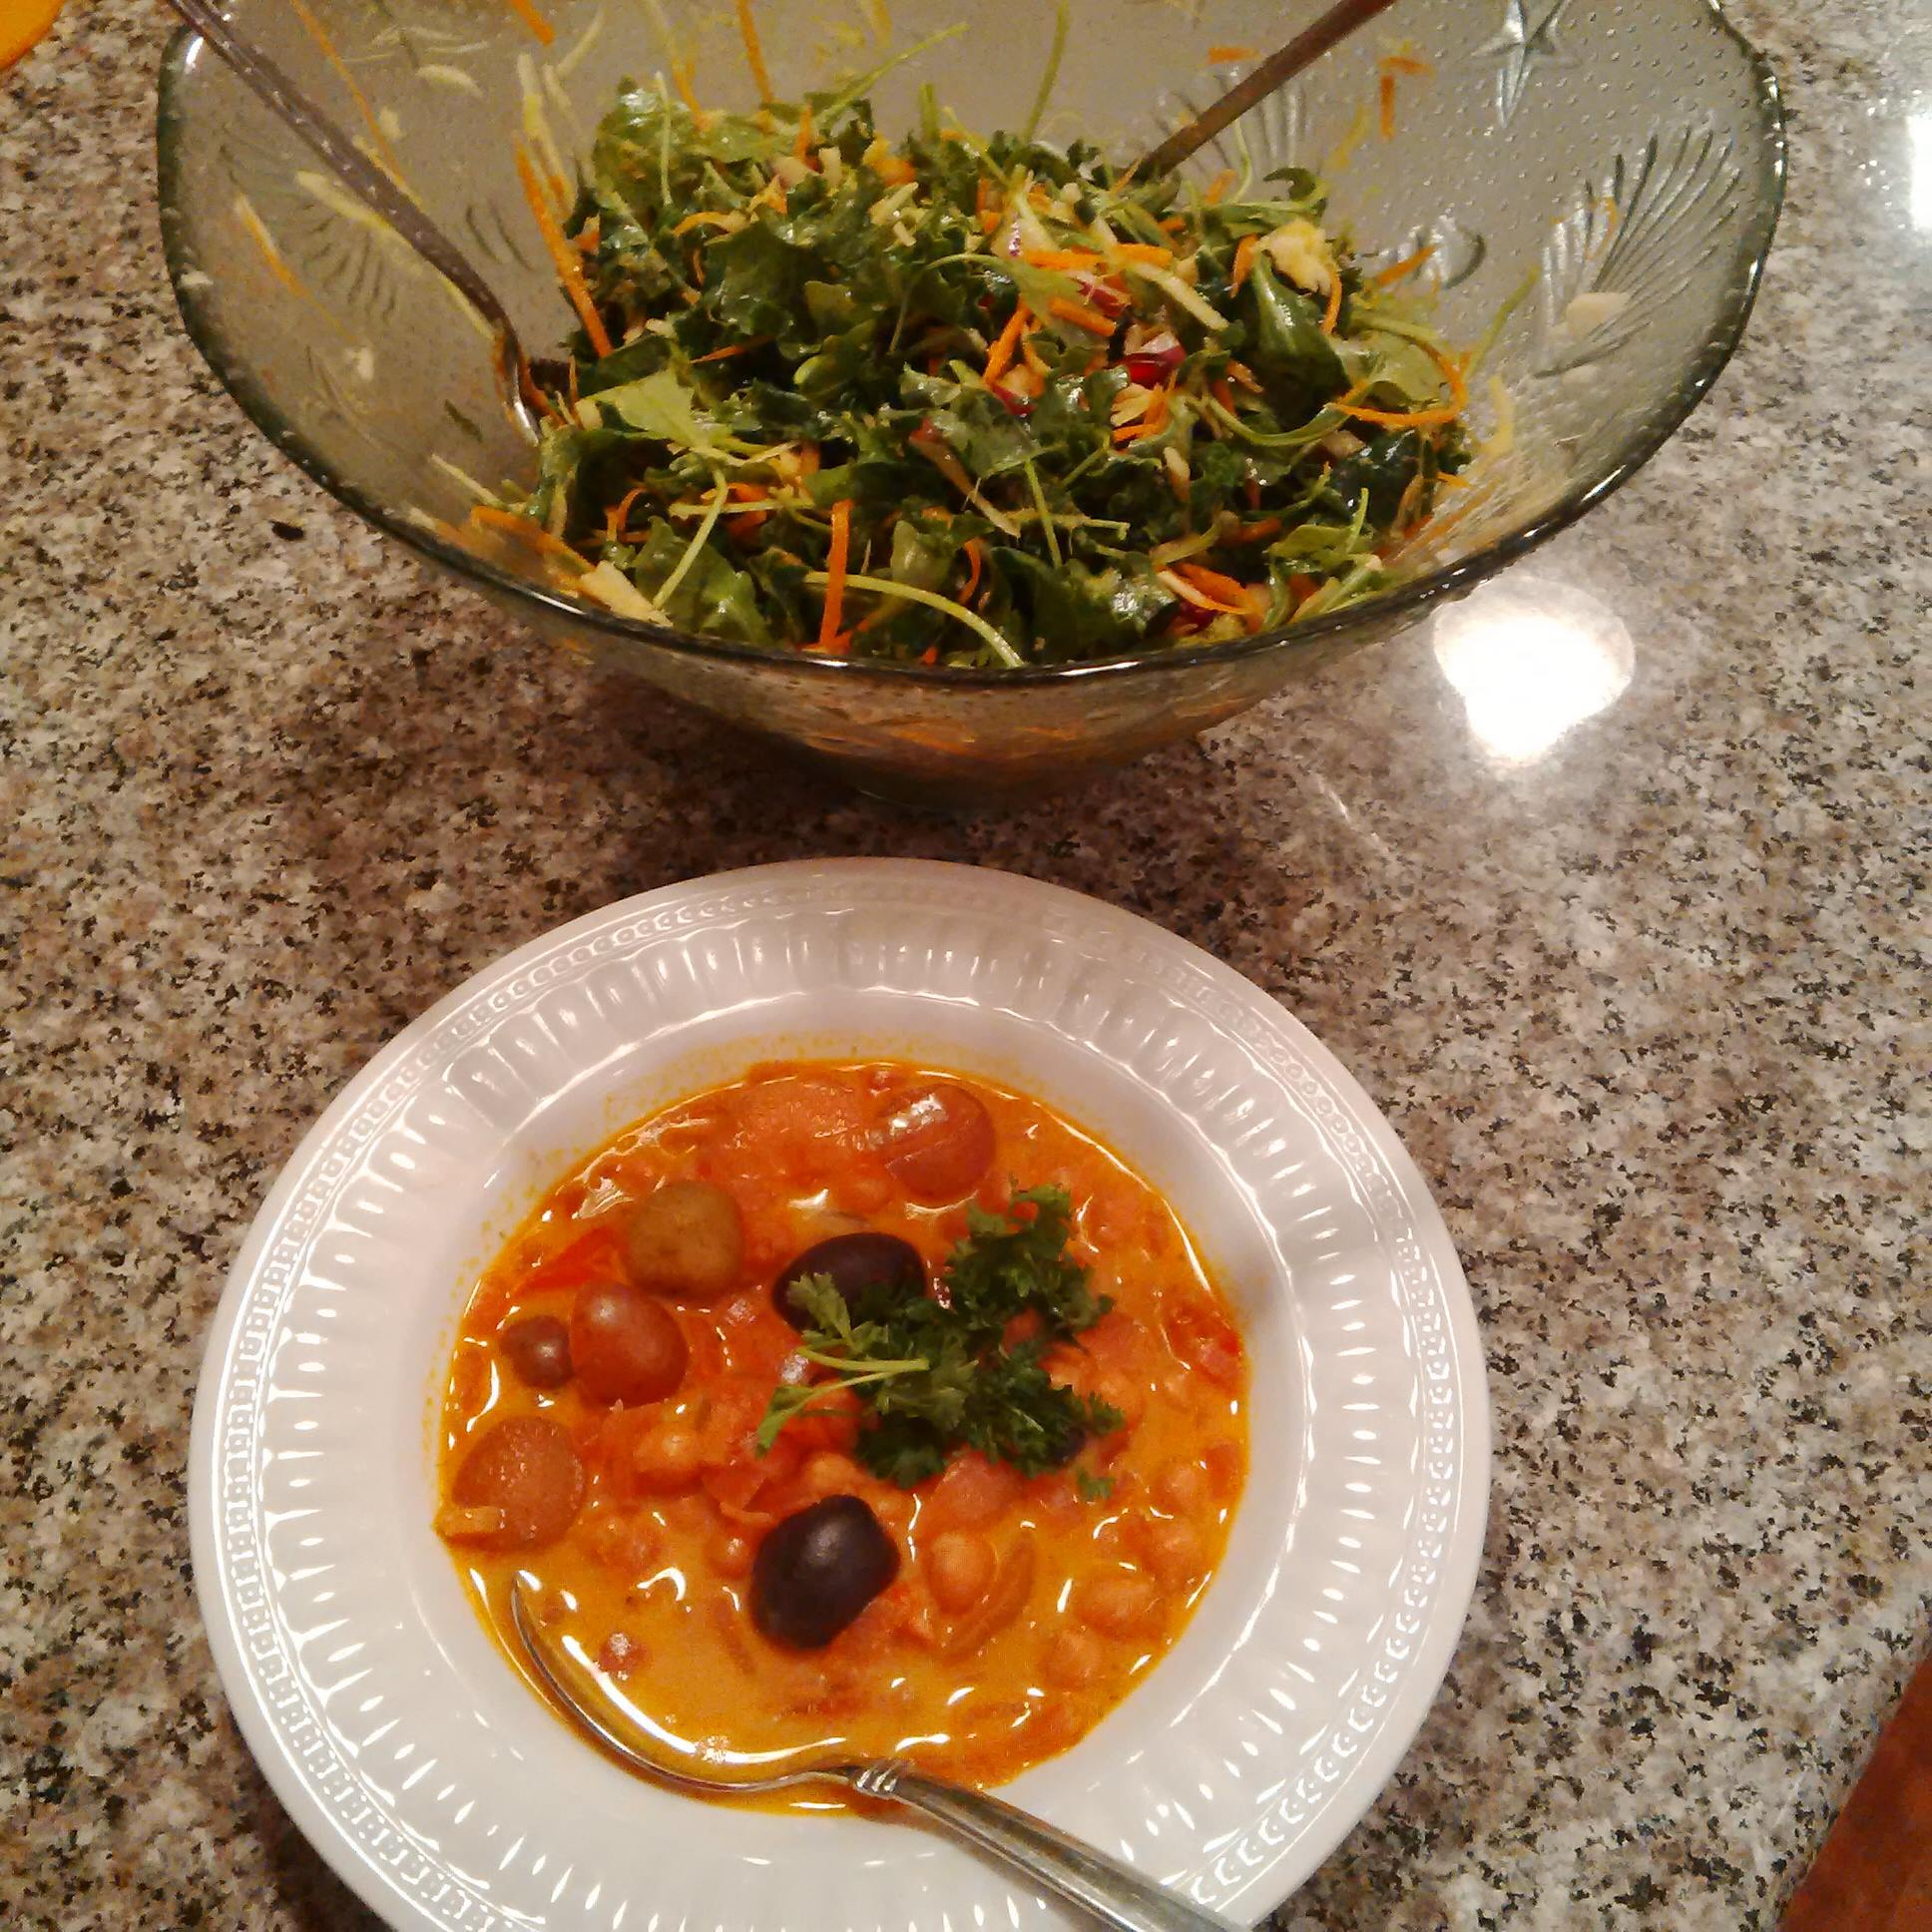 My mom's take on the  chickpea vegetable stew .